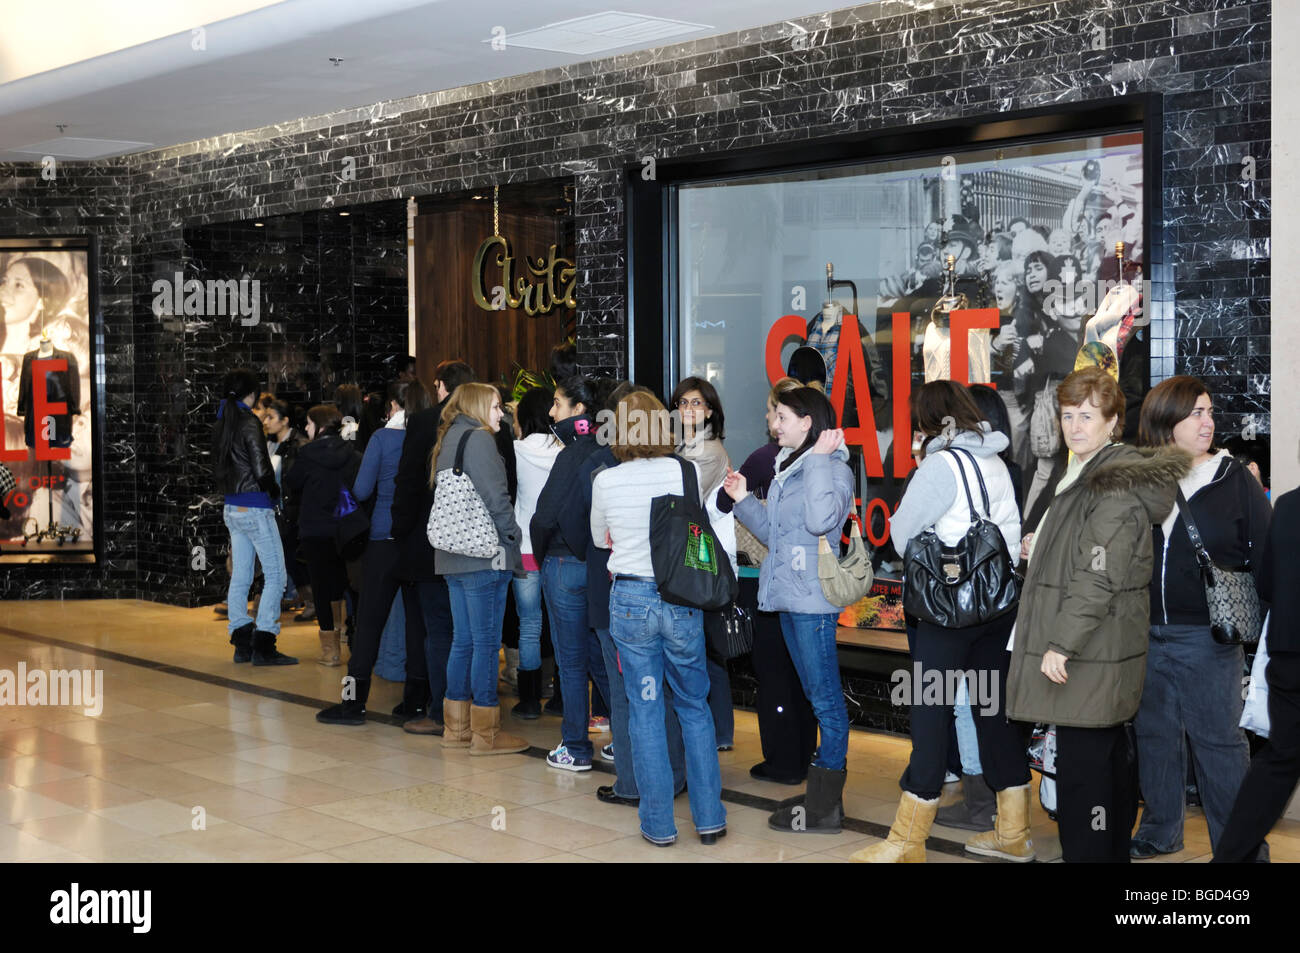 People lined up in front of a store in a shopping mall on a Boxing Day in Toronto, Canada. - Stock Image